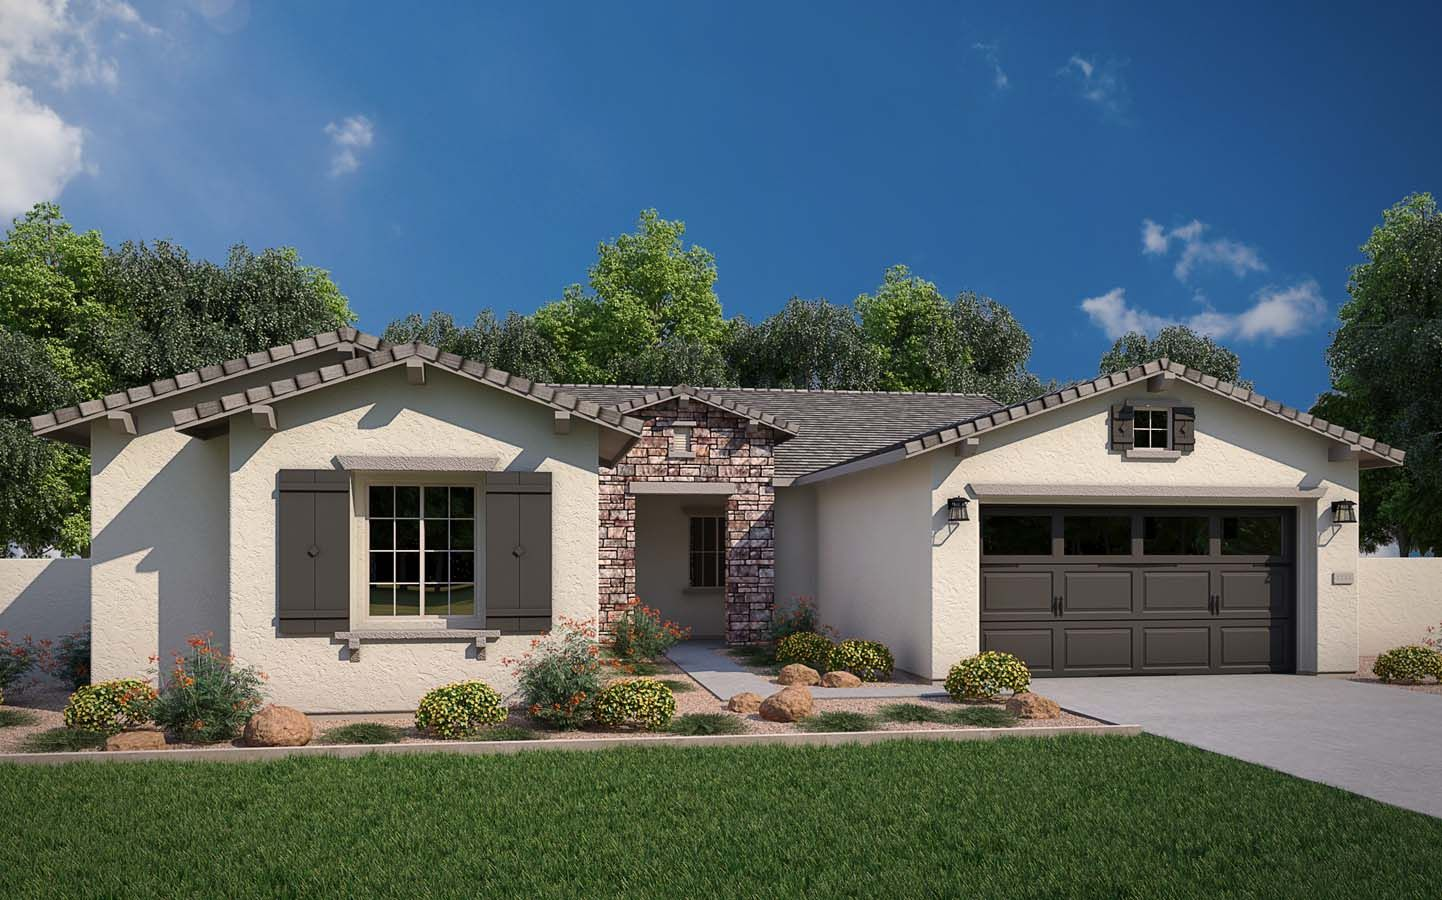 Single Family for Active at Residence 5 23110 N. 76th Ln. Peoria, Arizona 85383 United States